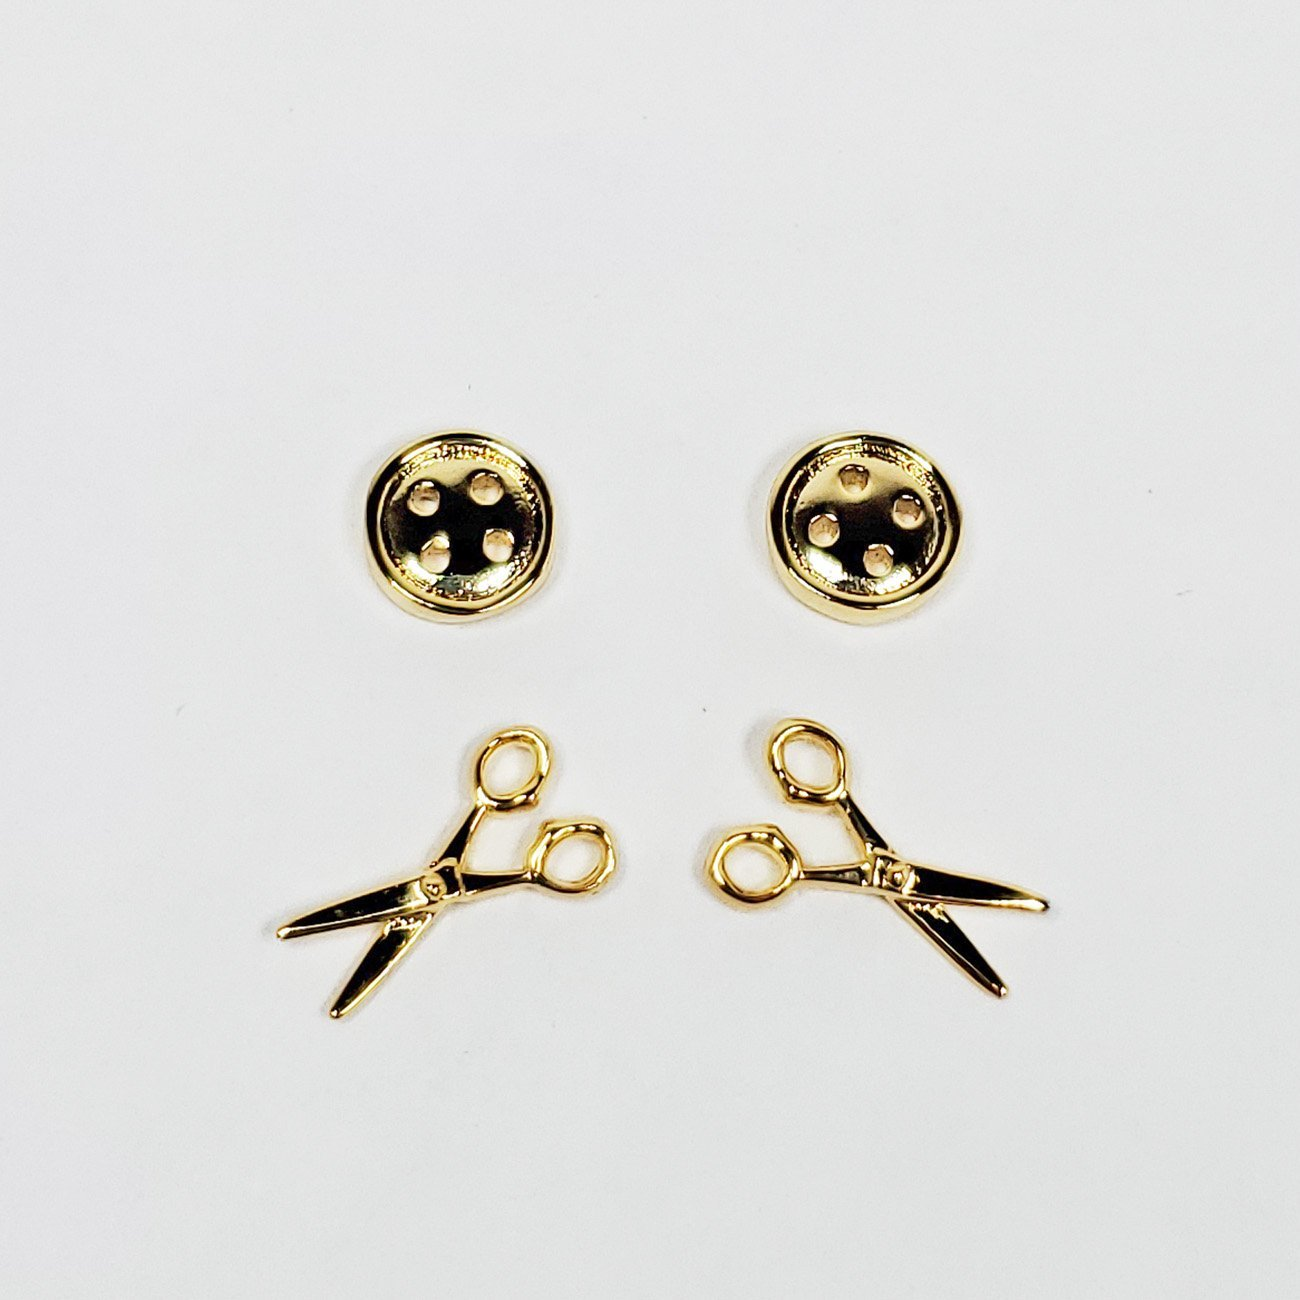 Button & Scissors Post Earrings Gold Set of 2 from the Quilt Spot